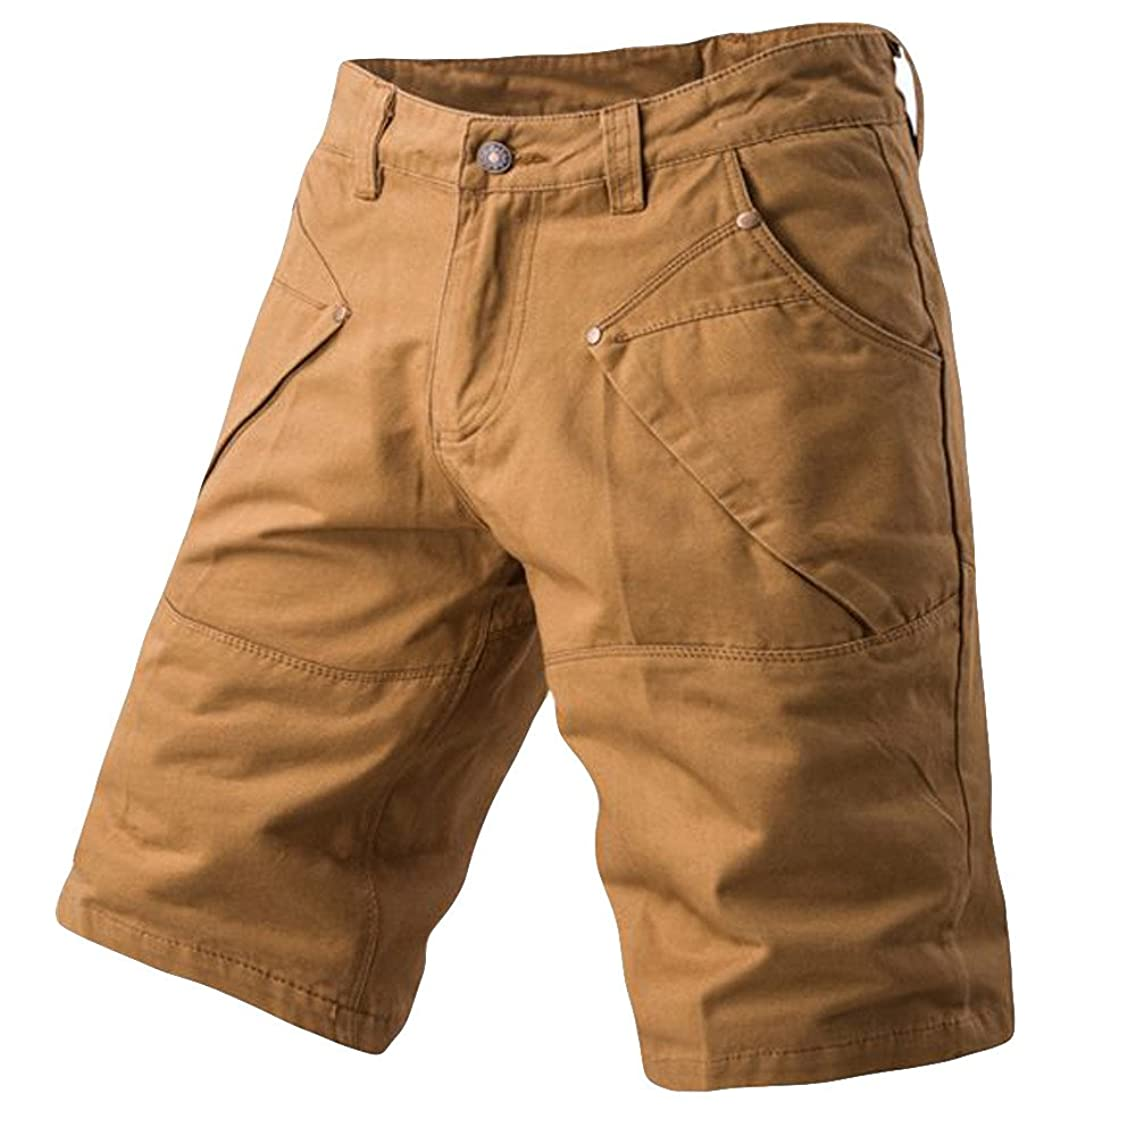 Kiasebu Mens Cargo Shorts Casual Pocket Beach Work Casual Short Trouser Shorts Pants with Pockets